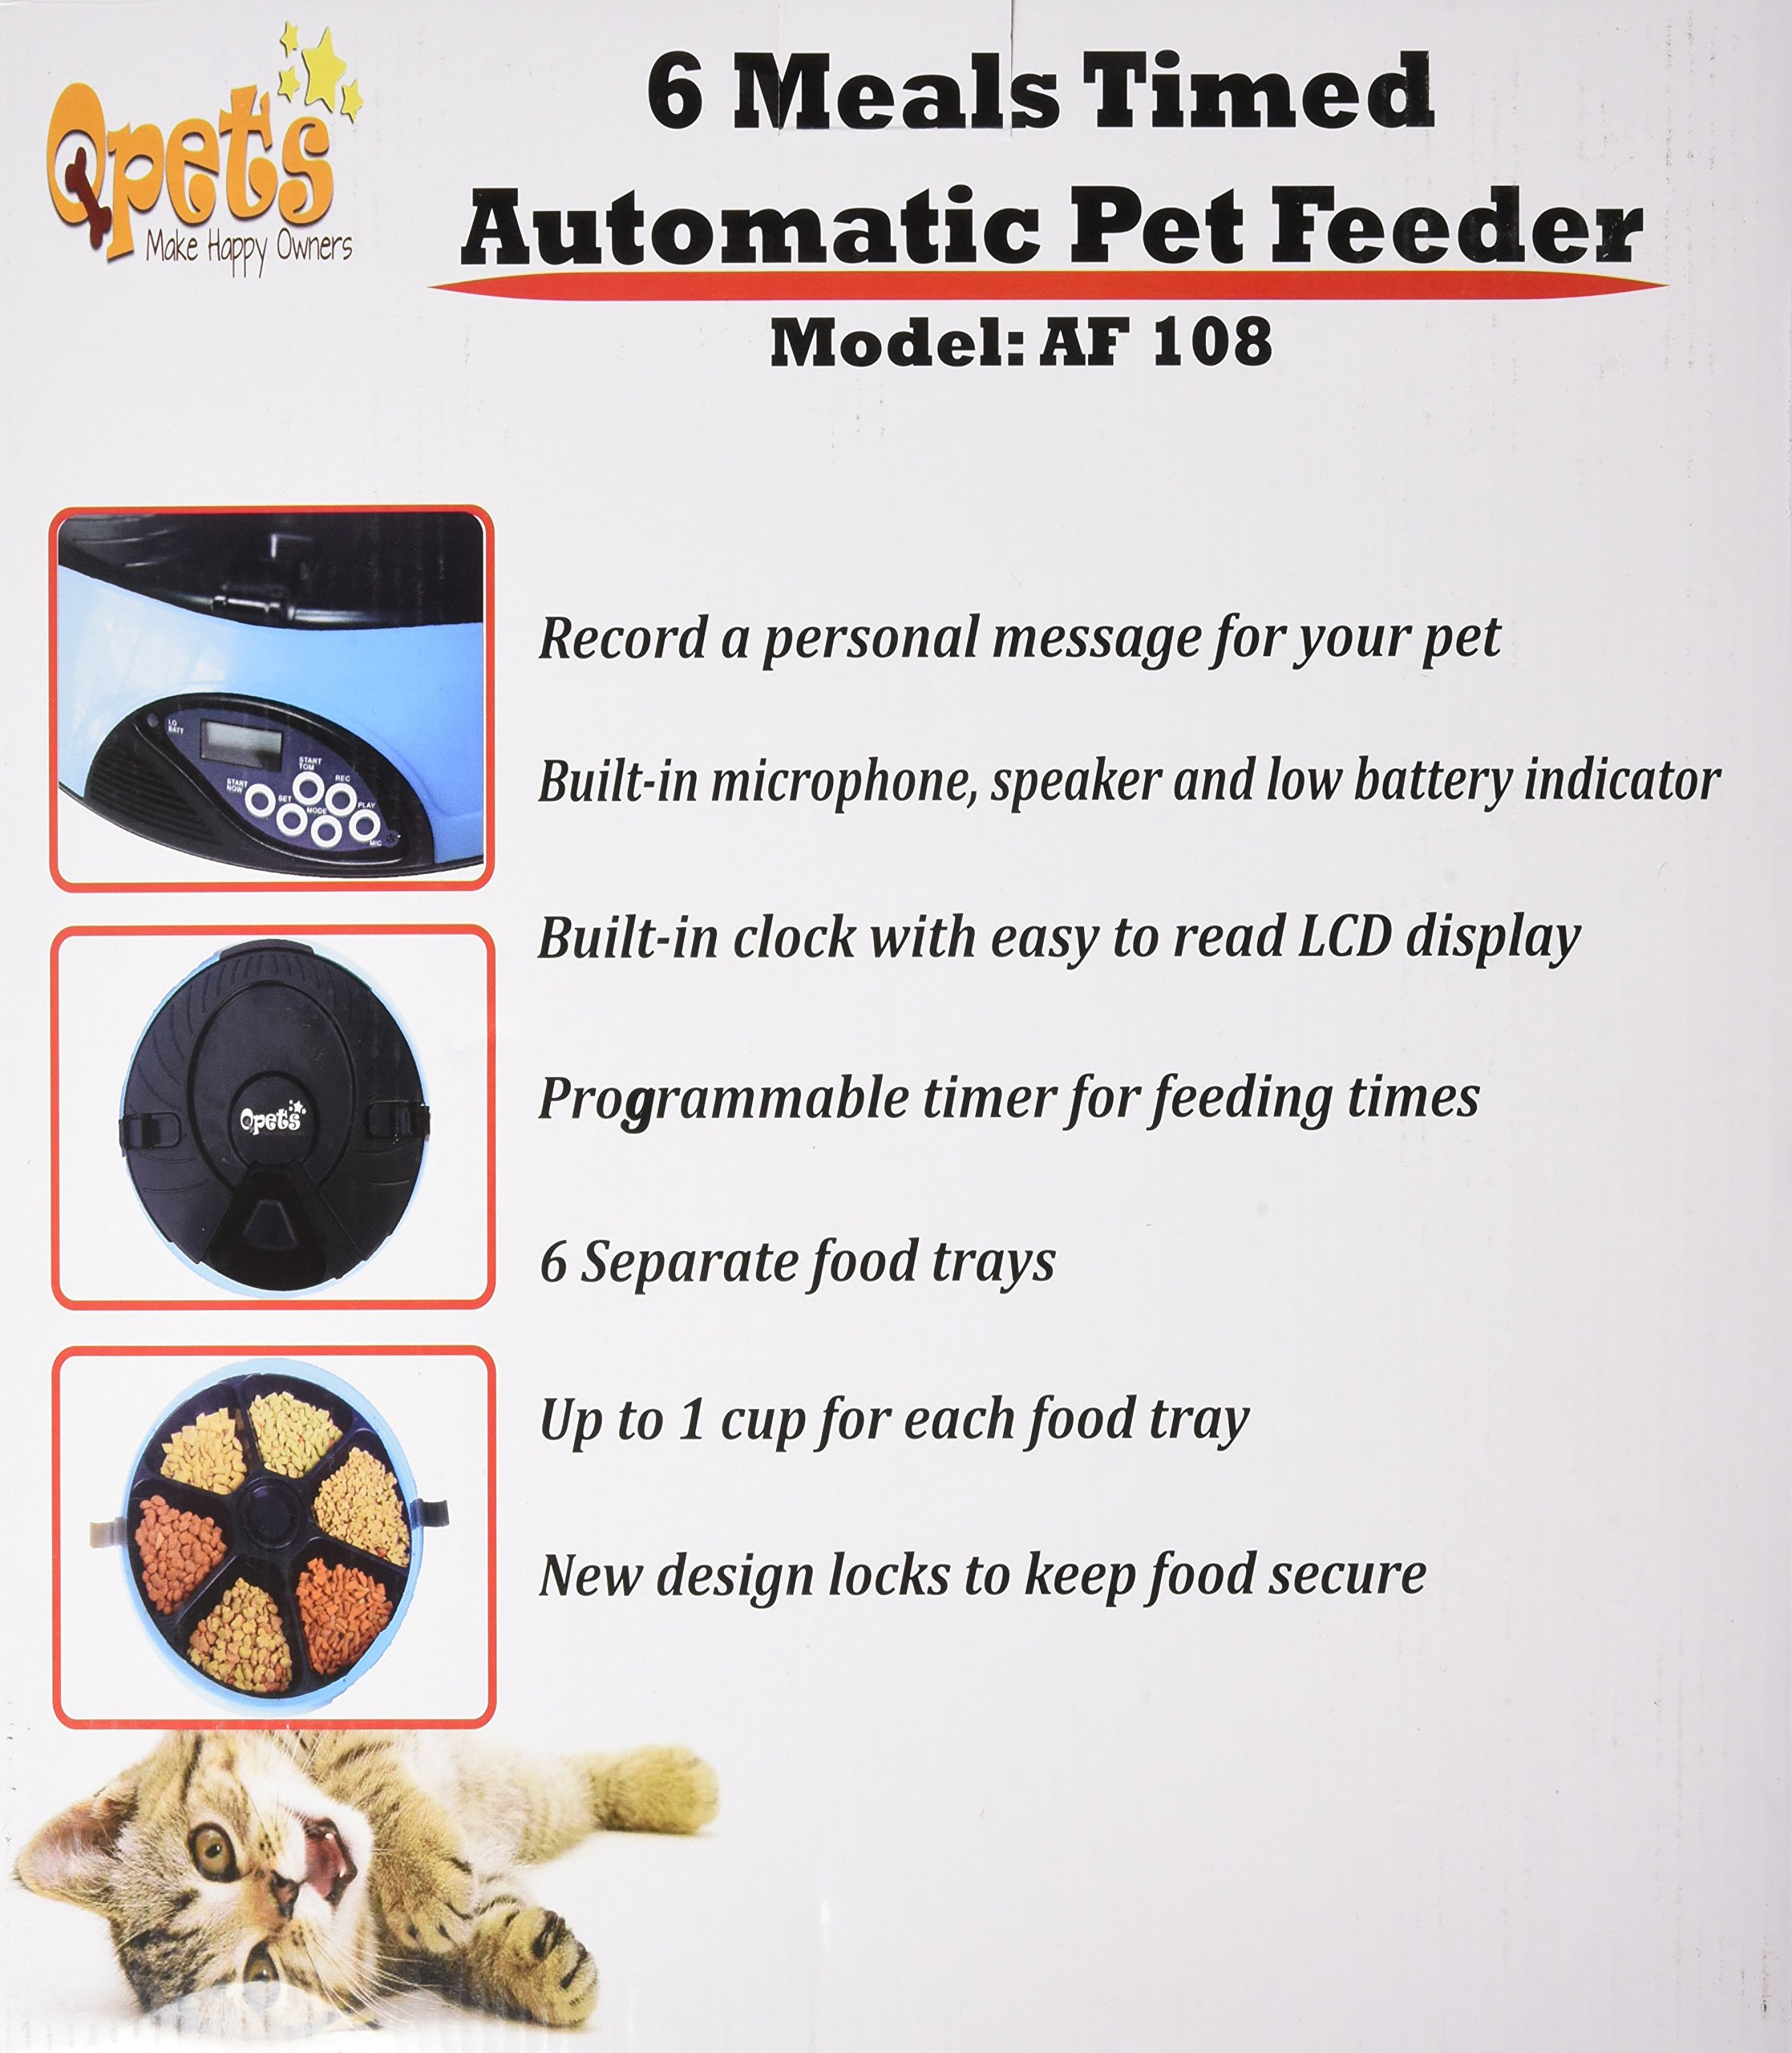 clean walmart wet timed ip feeder com freshener glade spray ecdc food automatic ounces air pet refill scent